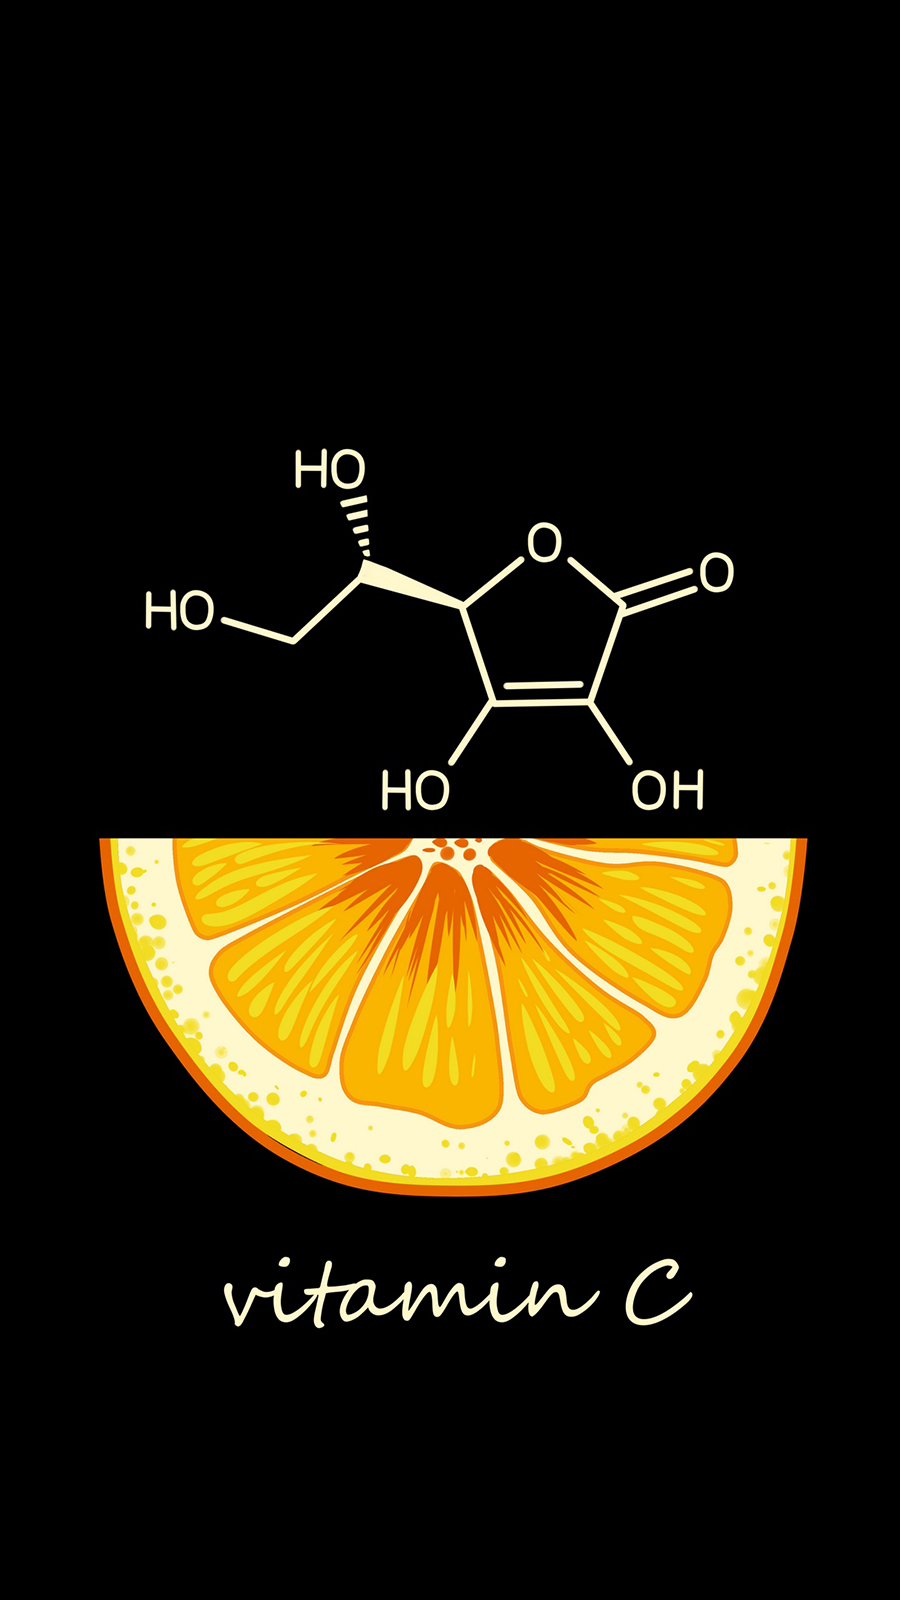 Vitamin C ideas Wallpapers Free Download